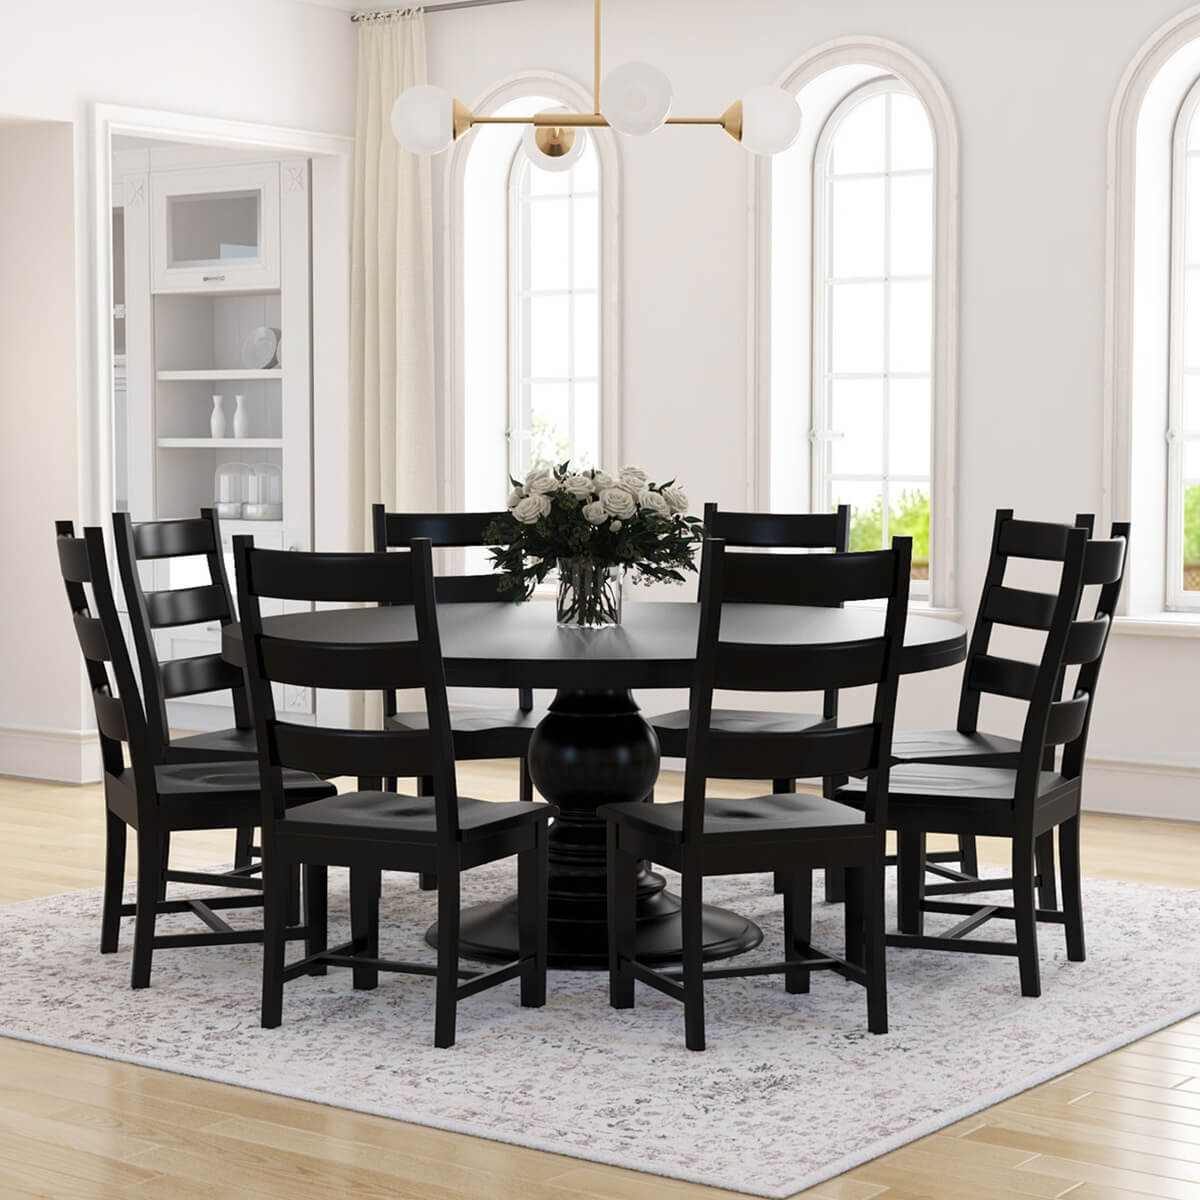 Nottingham rustic solid wood black round dining room table set for Solid wood round dining room table